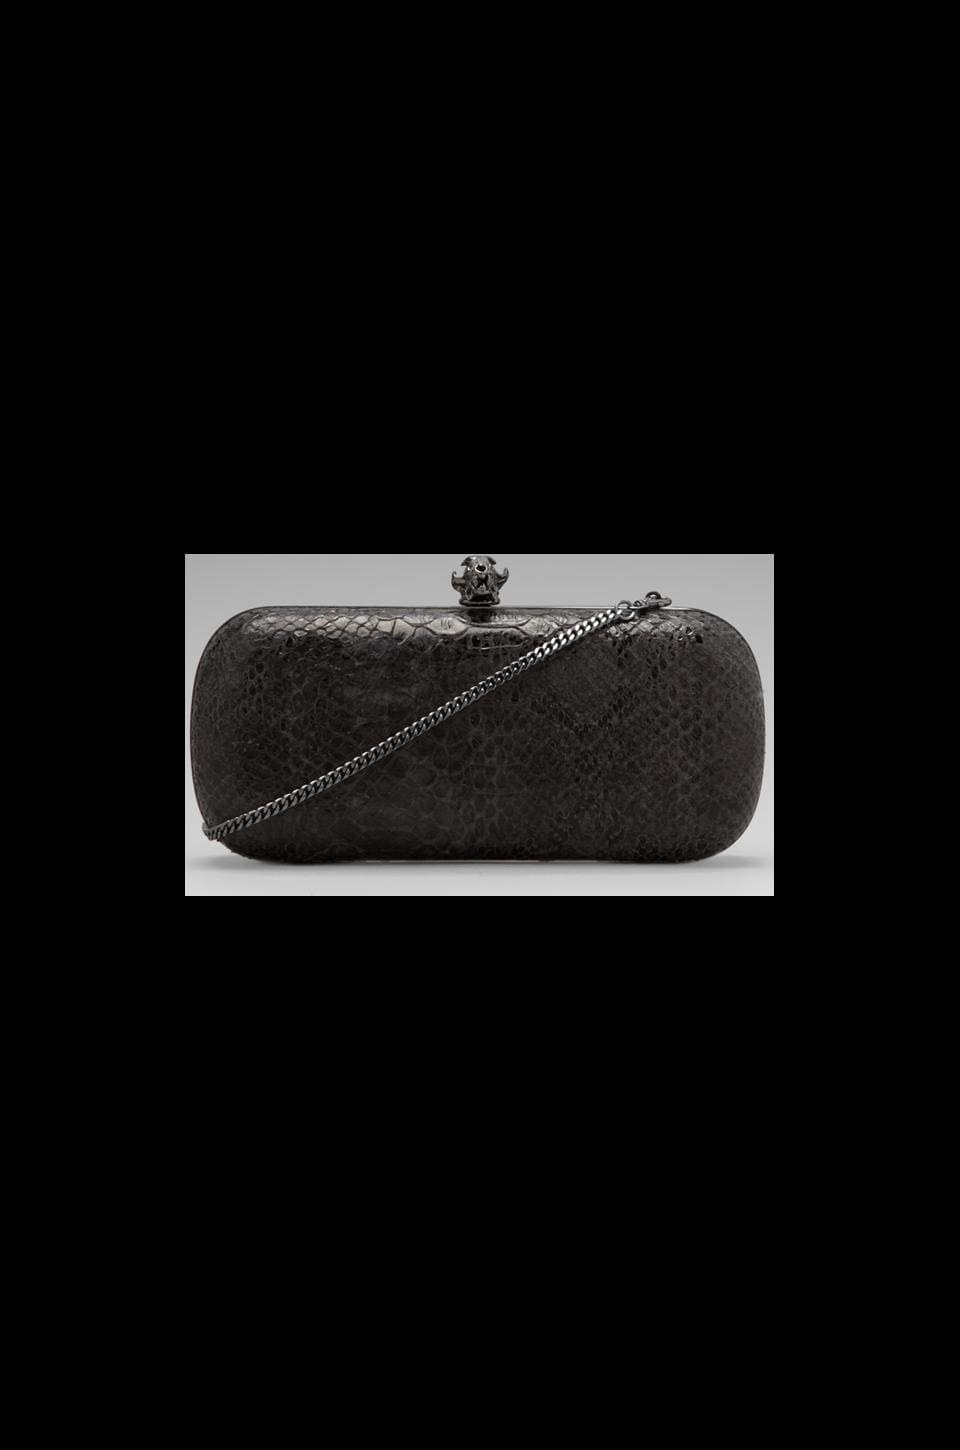 House of Harlow 1960 House of Harlow Wynn Clutch in Black/Grey Snake